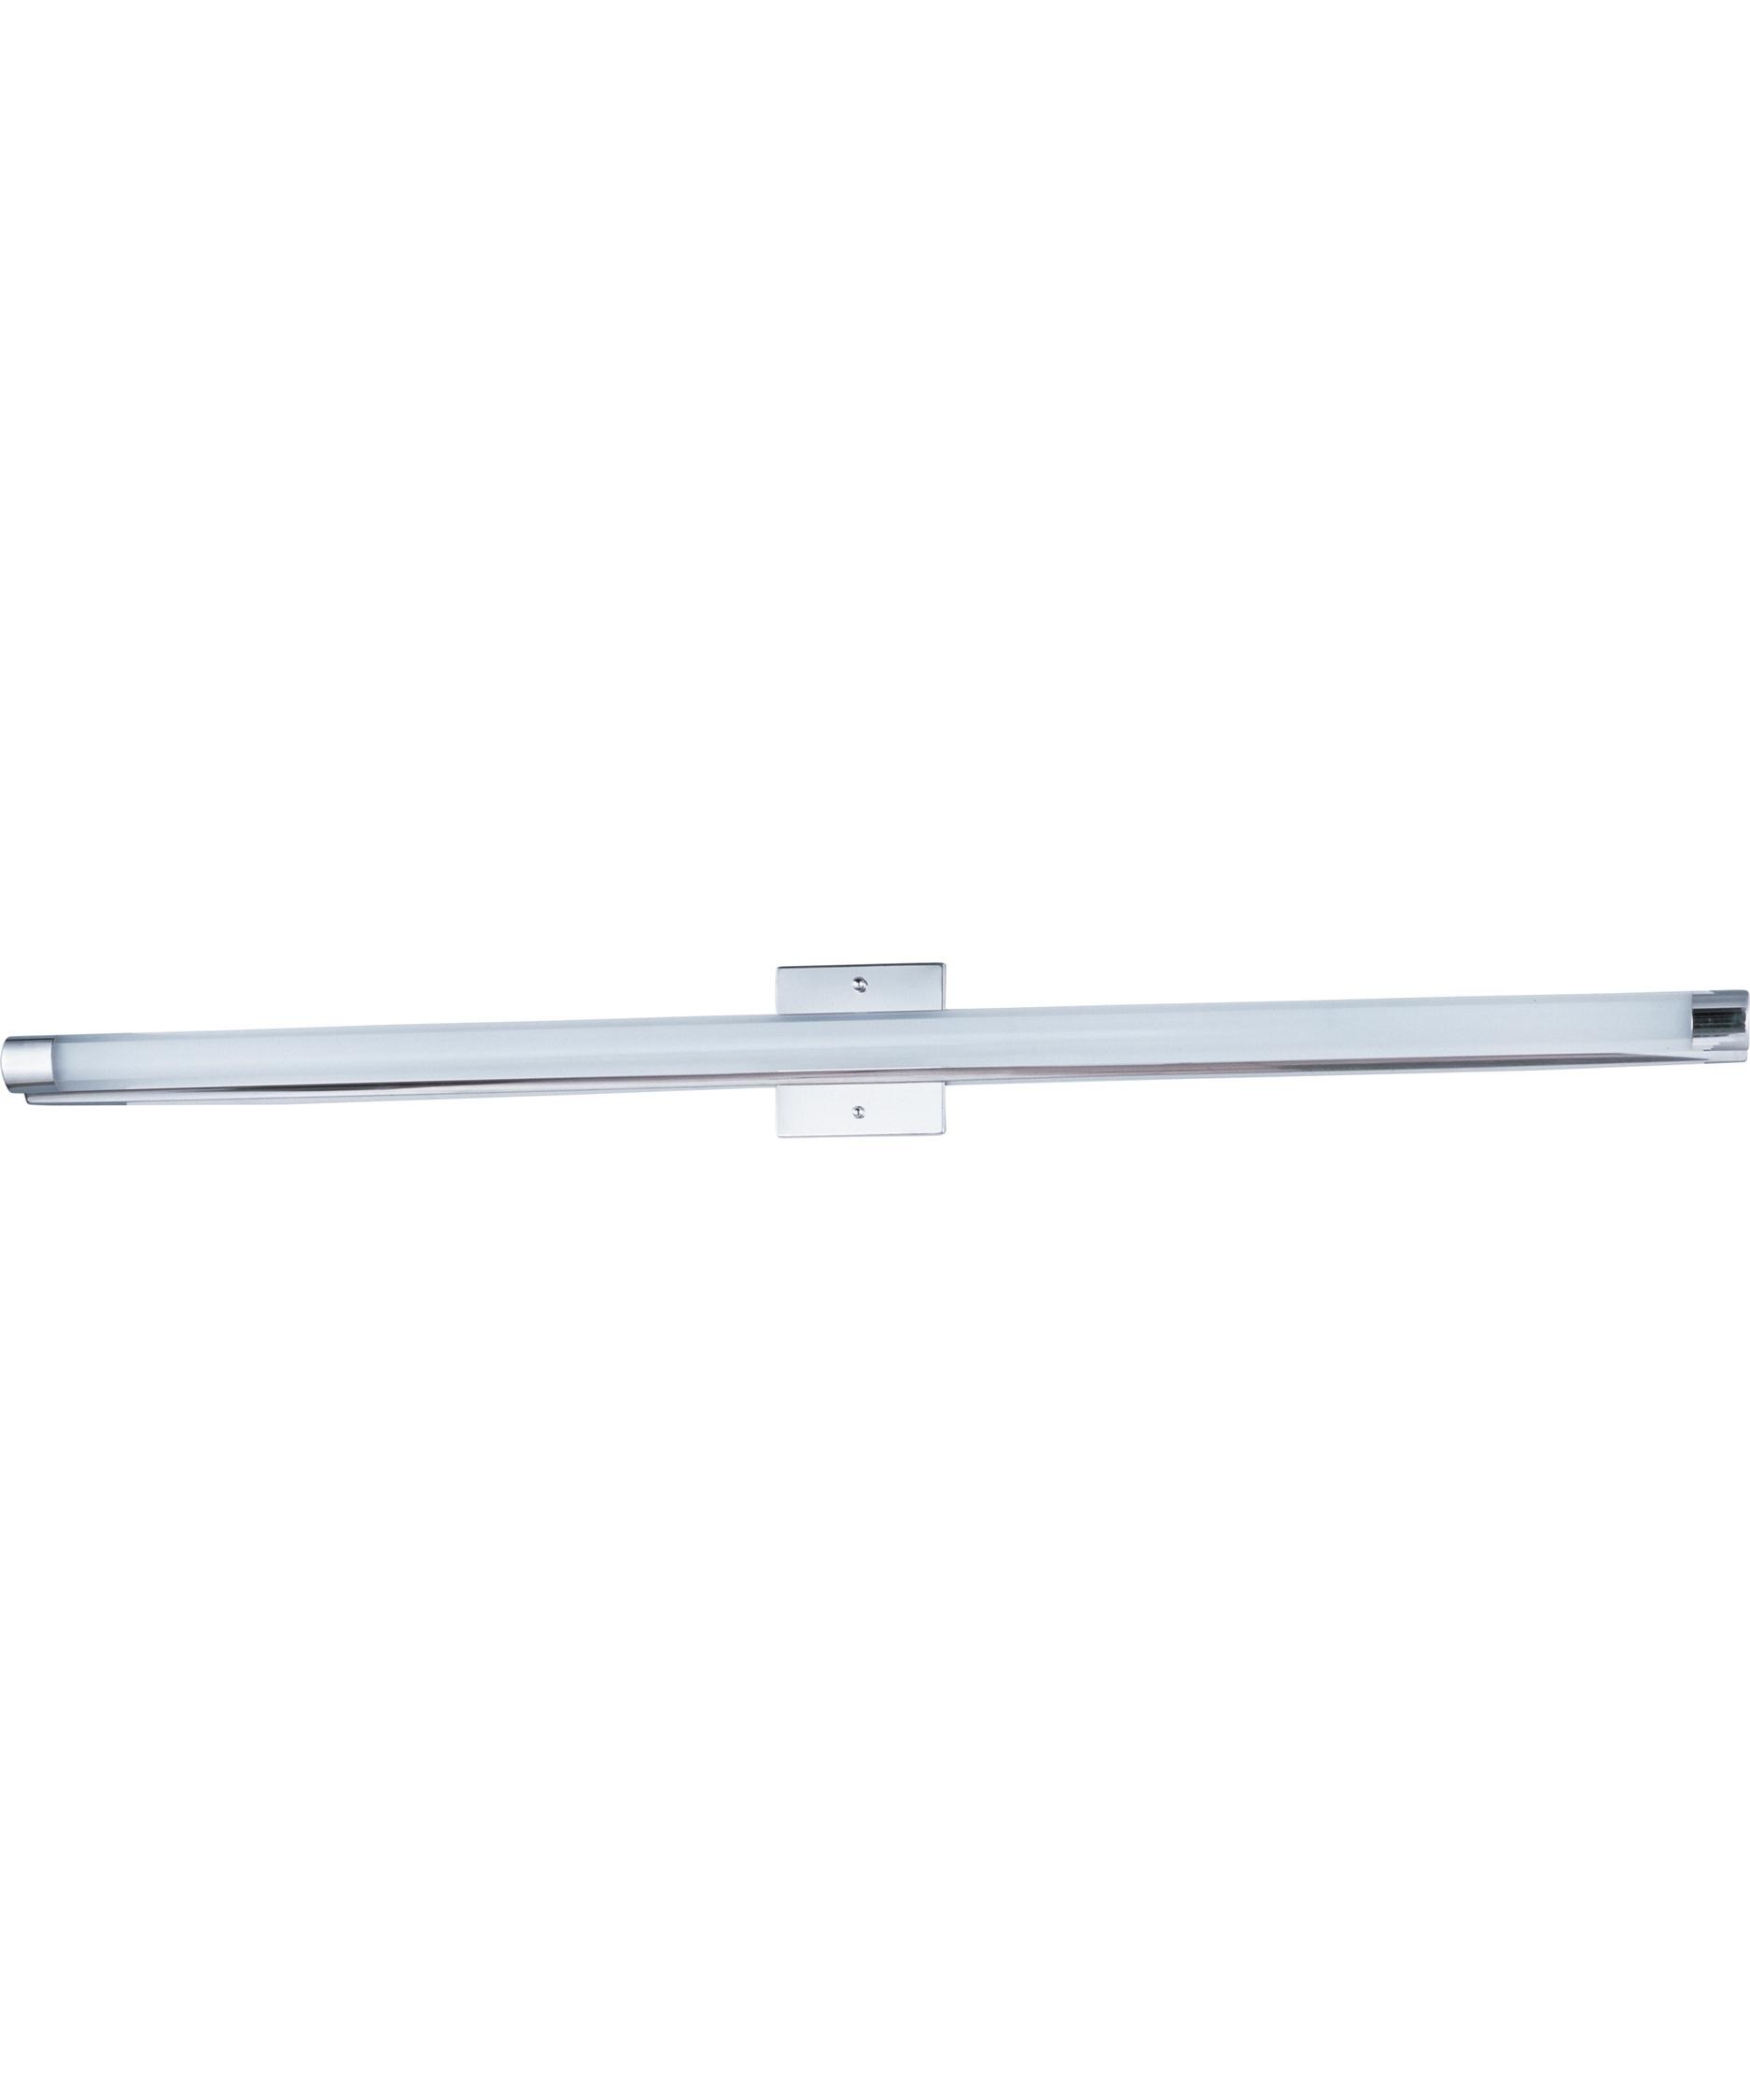 Led Bathroom Vanity Light: Shown in Polished Chrome finish and Clear White glass,Lighting